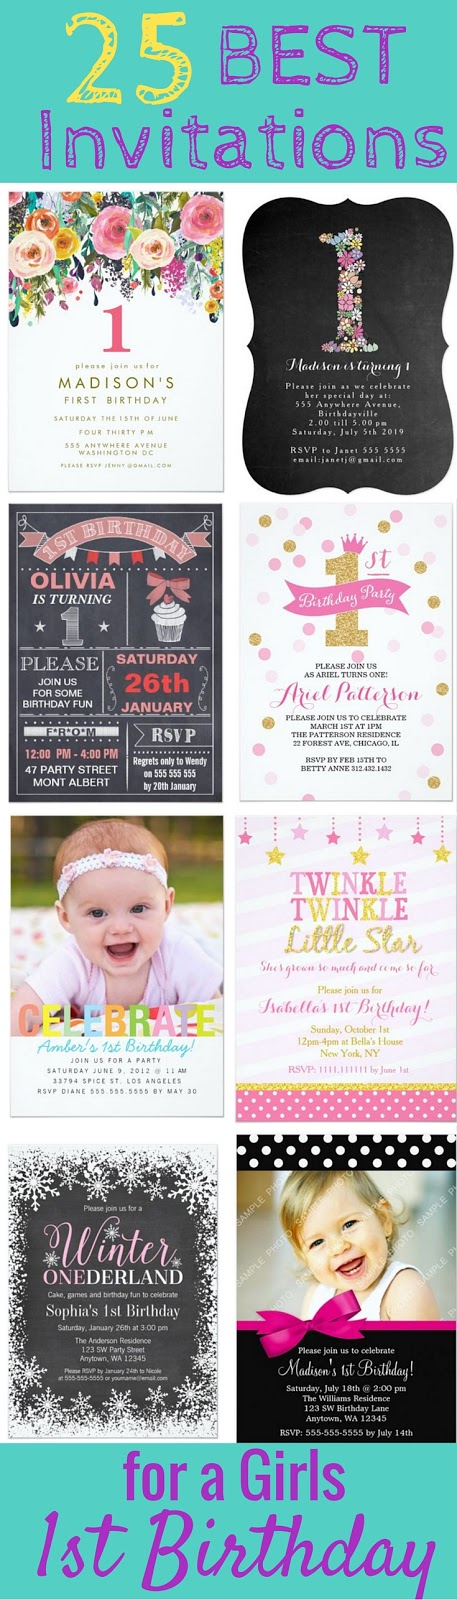 The 25 BEST 1st Birthday Party Invitations for Girls - Having too many options and ideas can be overwhelming, so I've searched through hundreds of first birthday invites for girls and compiled what I think are the very best ones to get. The pink and gold invitations are some of my favorites, and the twinkle twinkle little star invite is so adorable! All of these invitations are personalizable, but I love the ones that allow you to upload your own custom photo of your little one. ♡